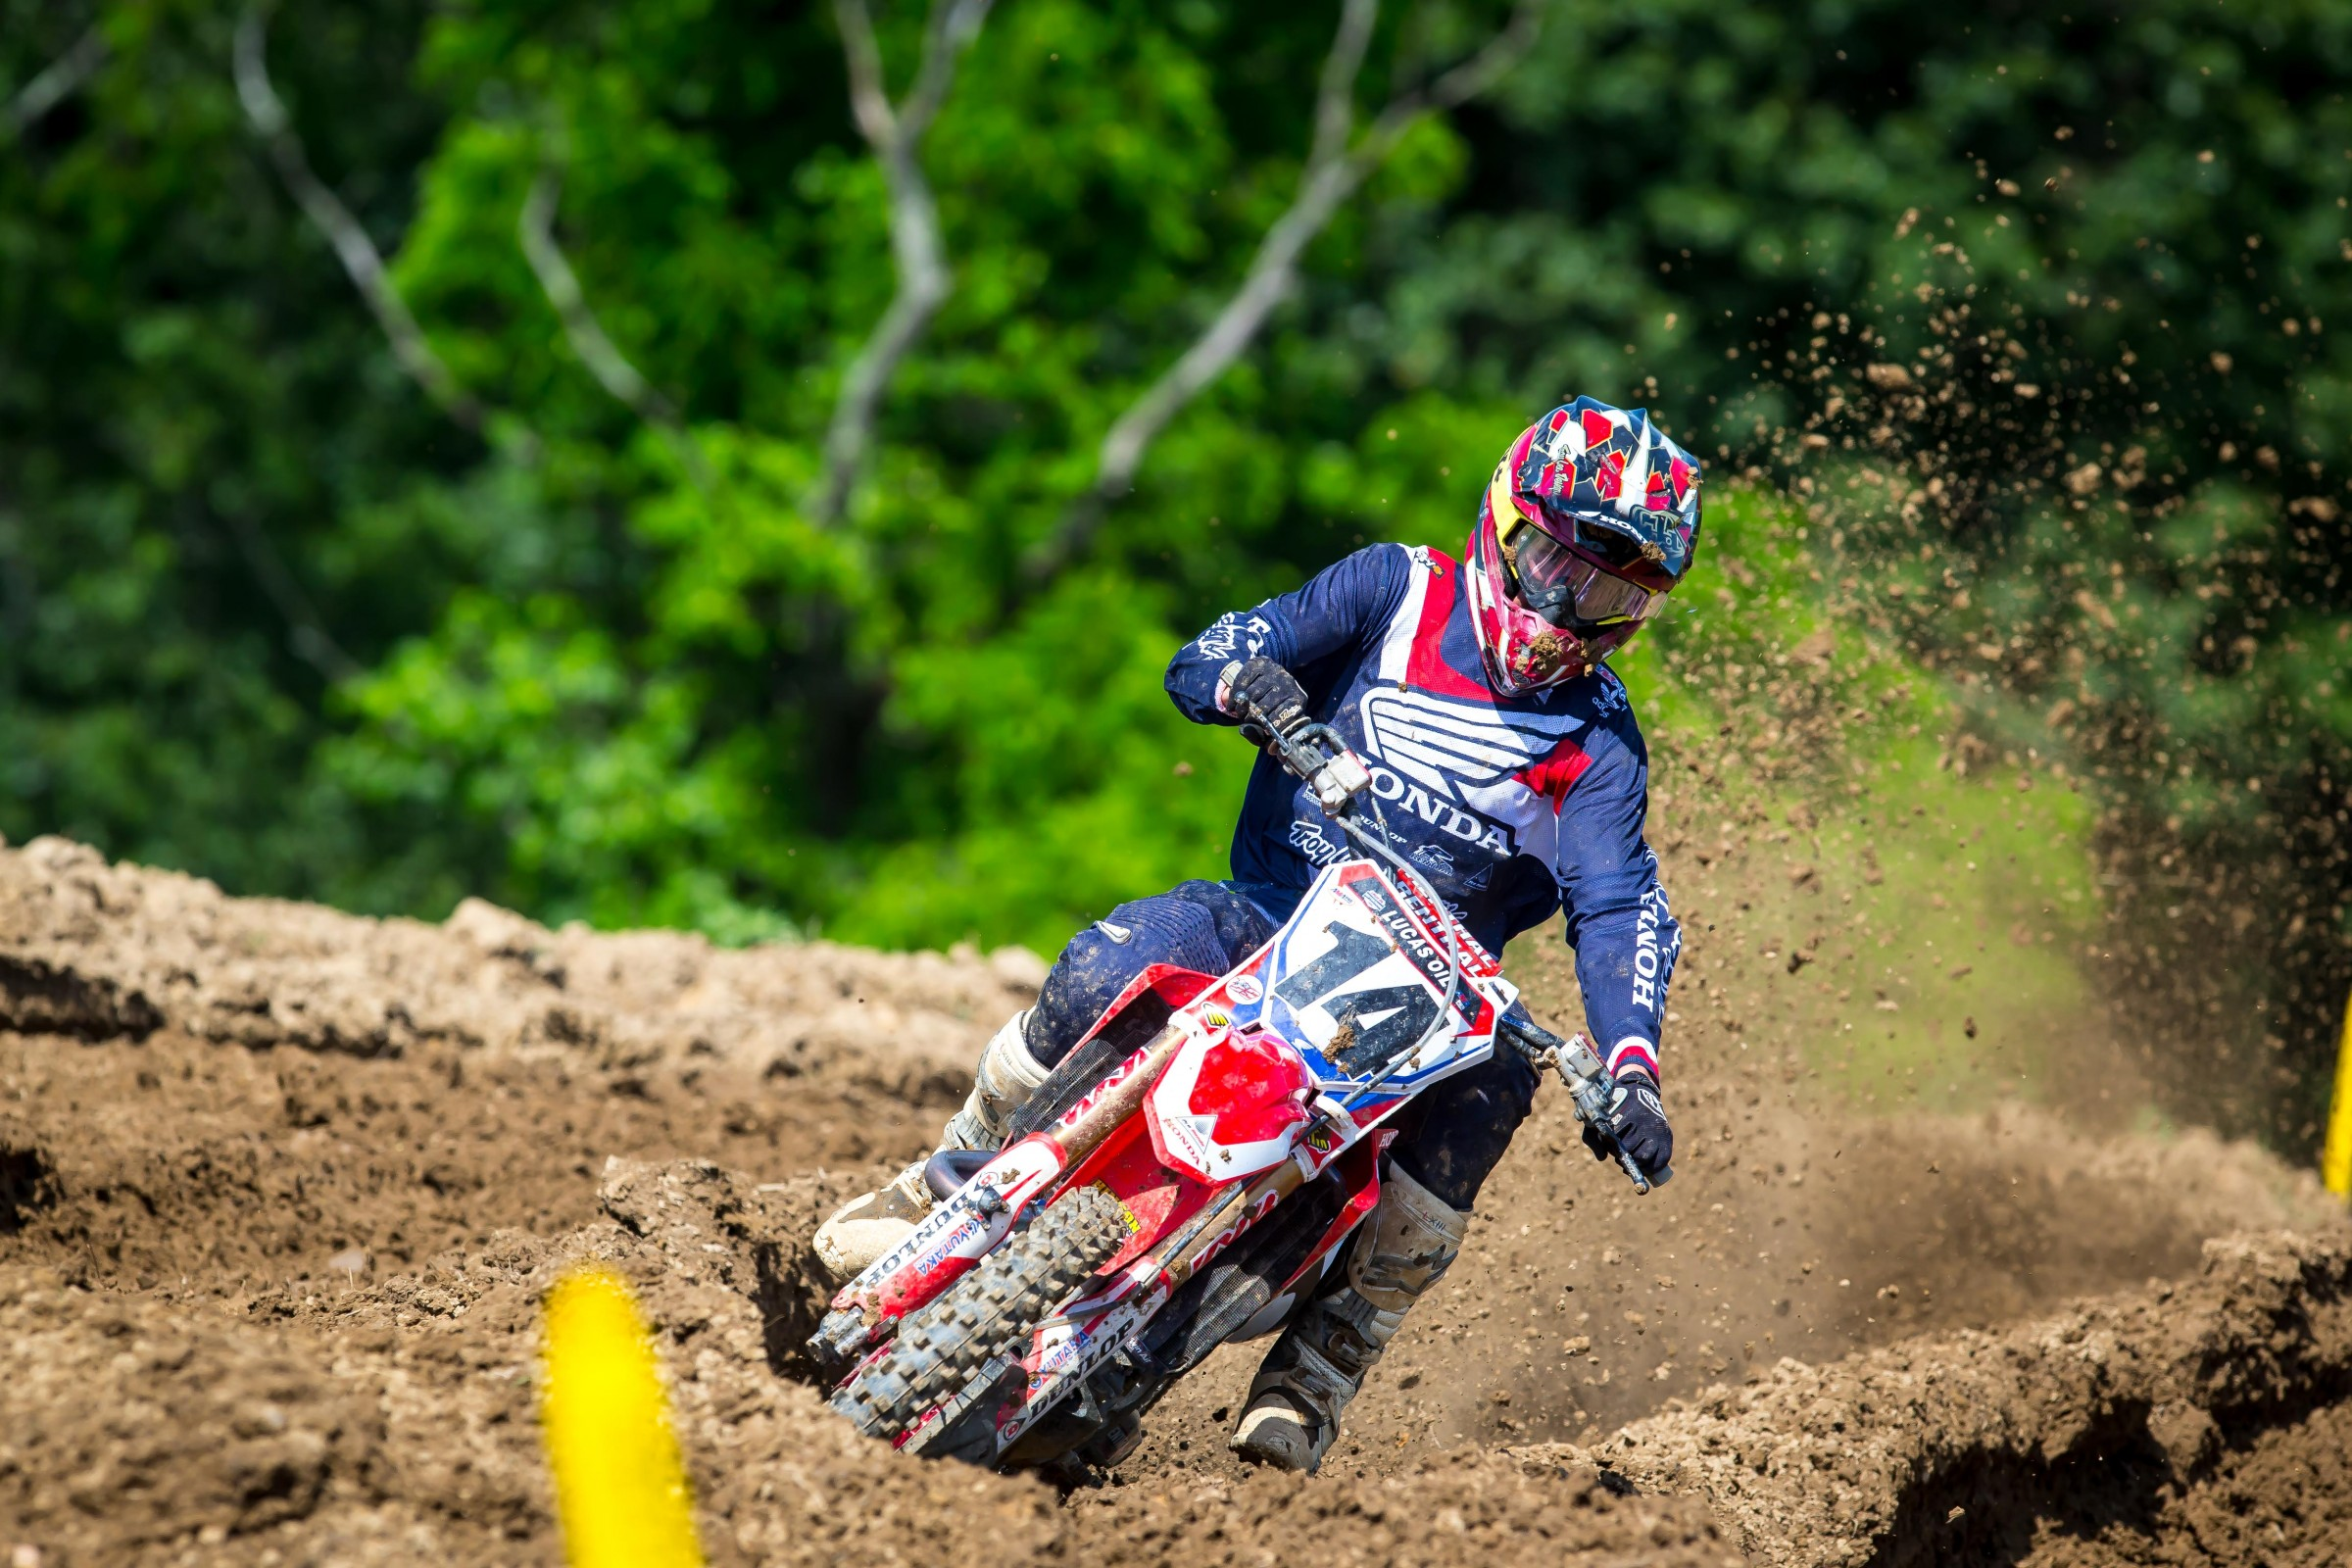 We'll see if Seely's results improve as he gets more comfortable with his new home in Florida.